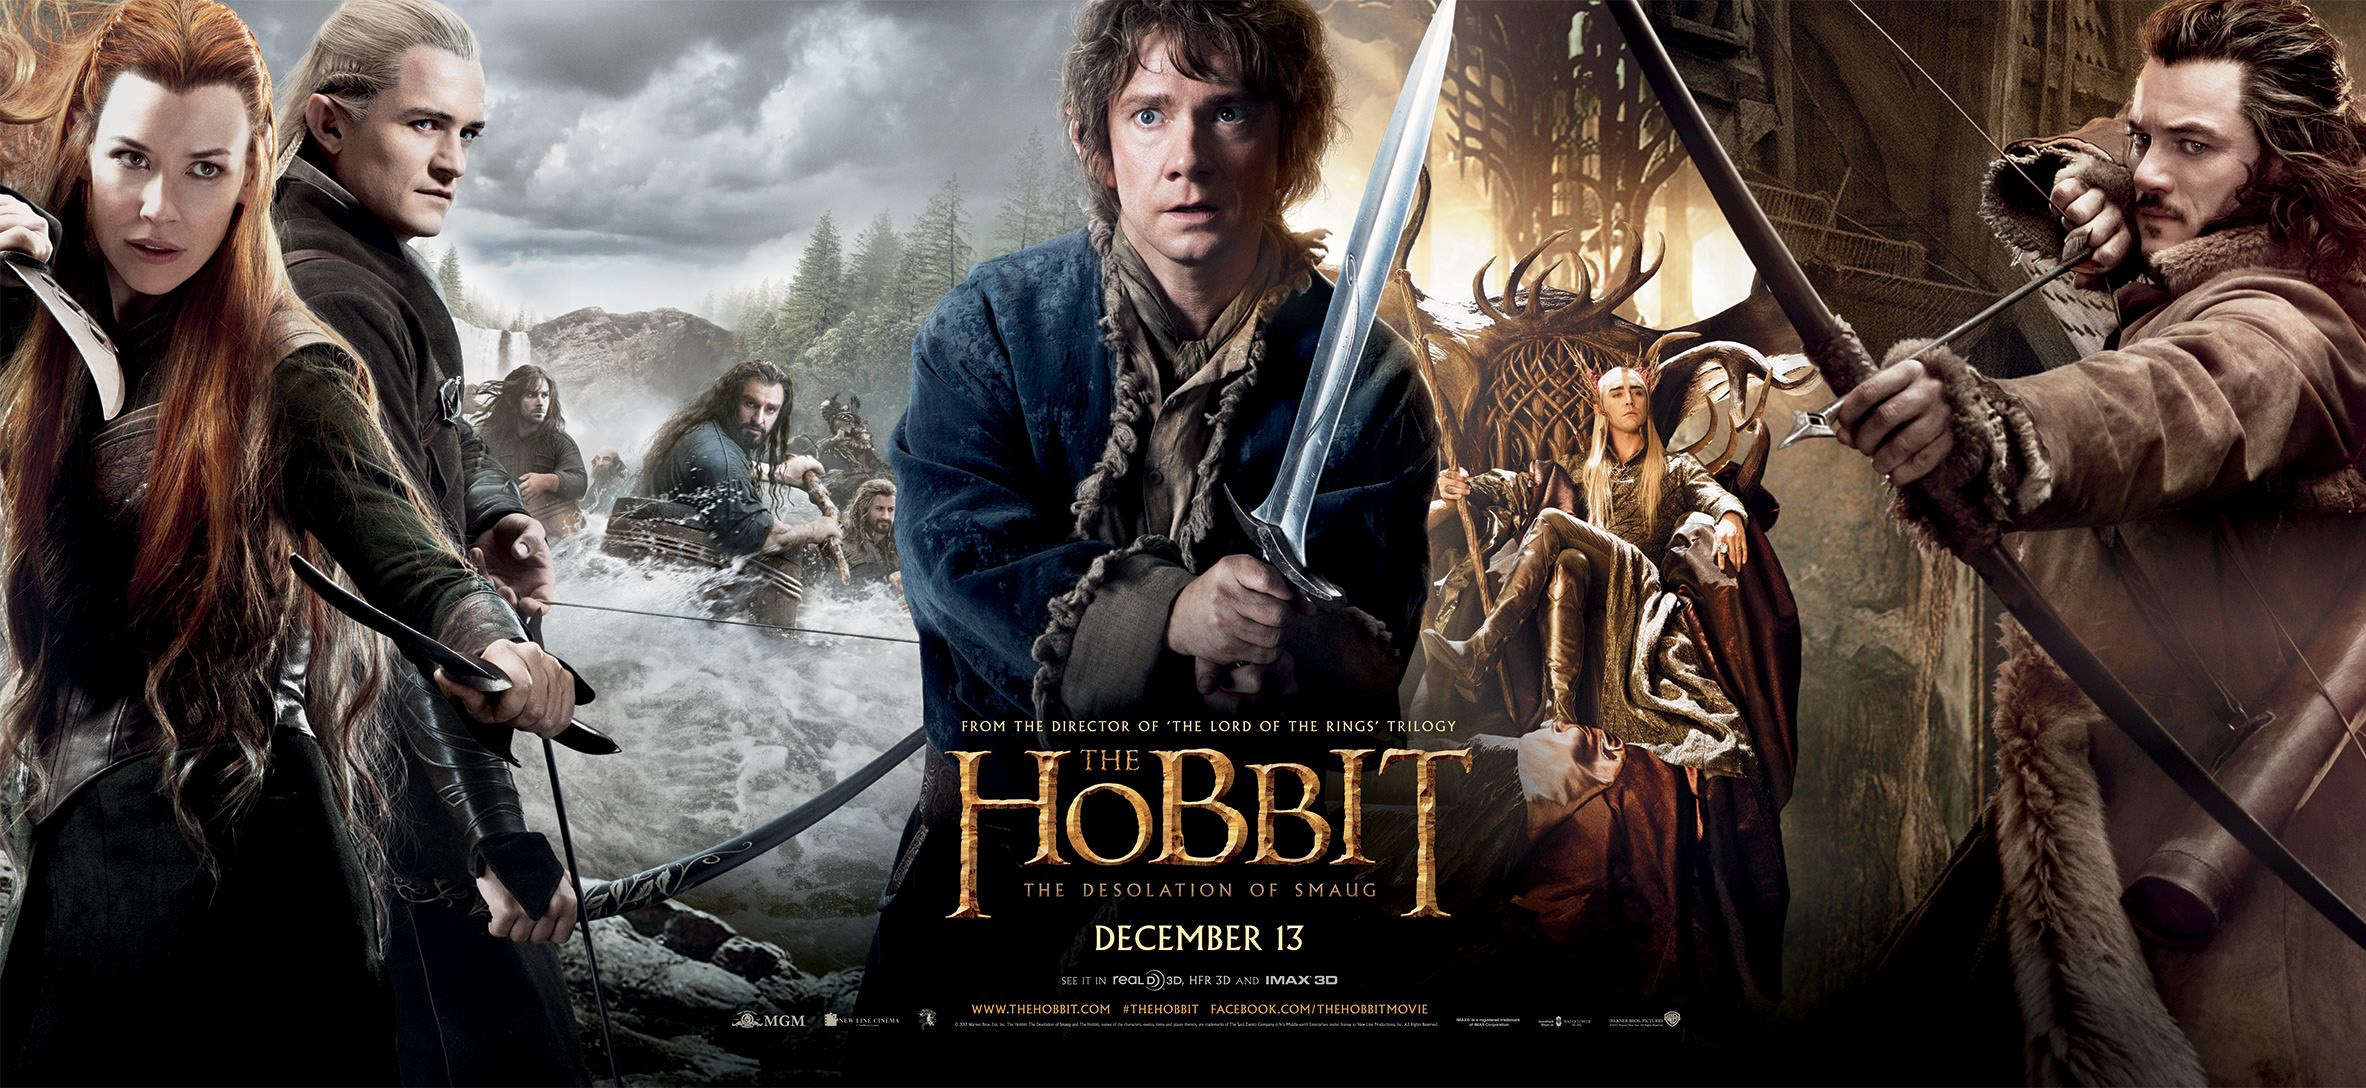 The Hobbit The Desolation Of Smaug 2013 Oh That Film Blog